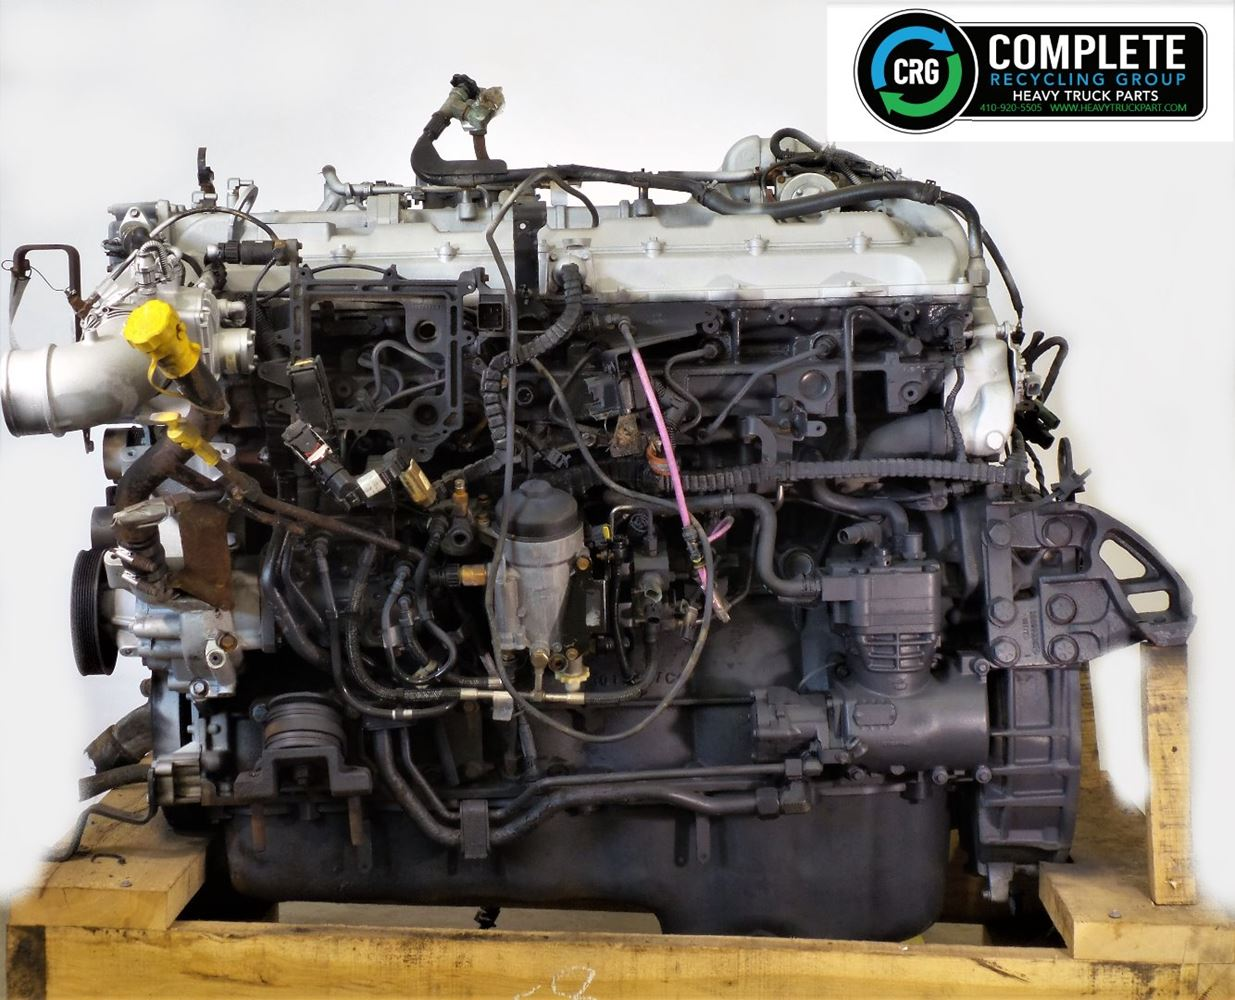 2014 INTERNATIONAL N13 ENGINE ASSEMBLY TRUCK PARTS #679765